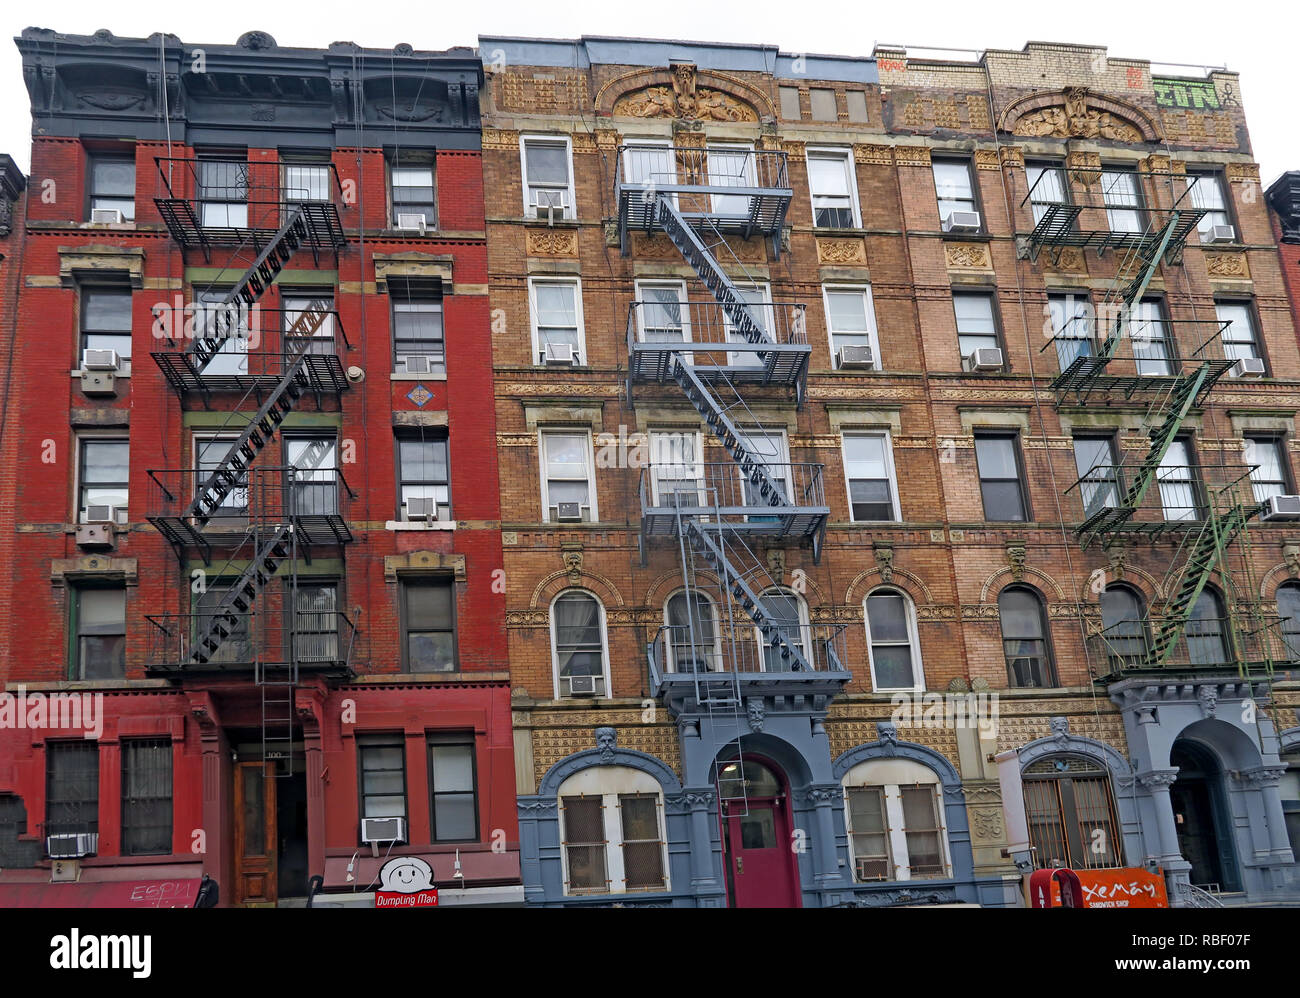 98, Saint Mark's Place, East Village, Manhattan Led Zeppelin cover tenements from Physical Graffiti album, New York City, NY - Stock Image